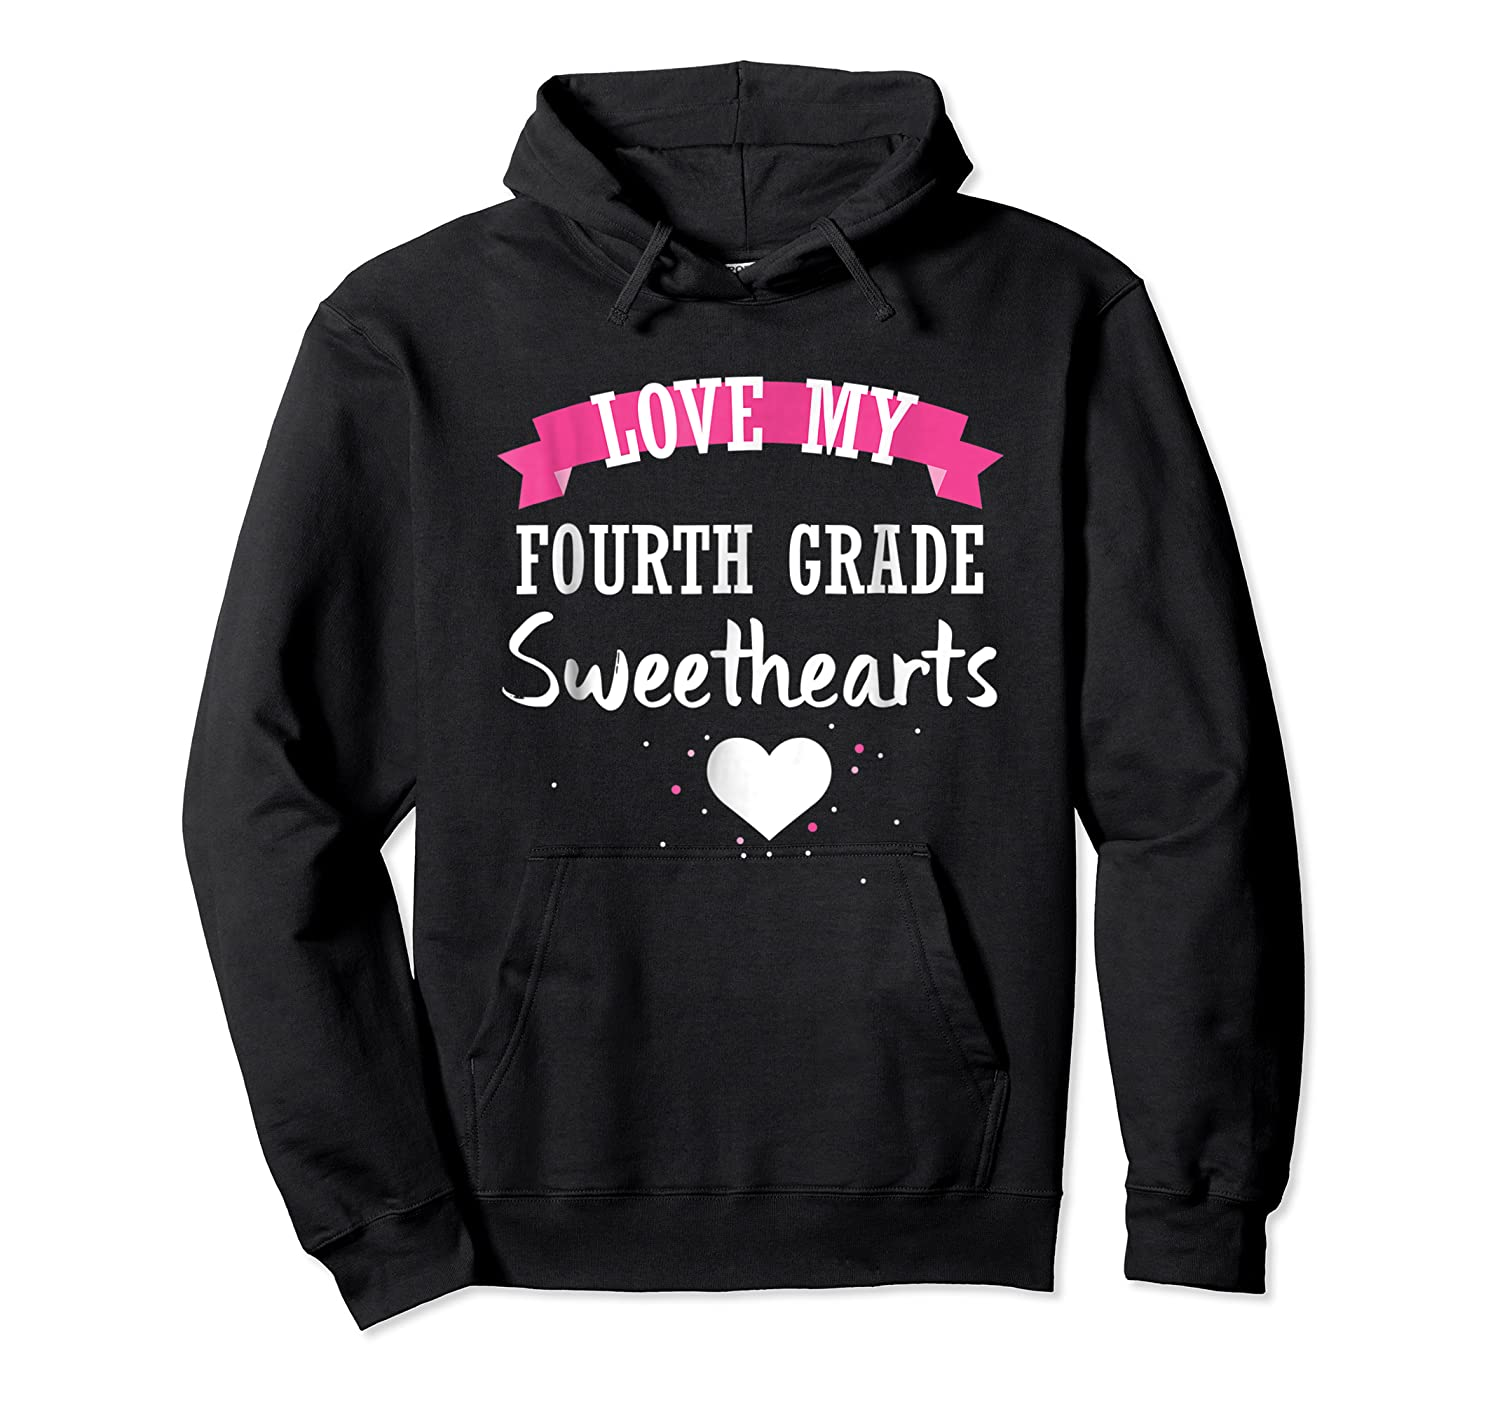 Tea Valentine Day Love My Fourth Grade Sweethearts Shirts Unisex Pullover Hoodie